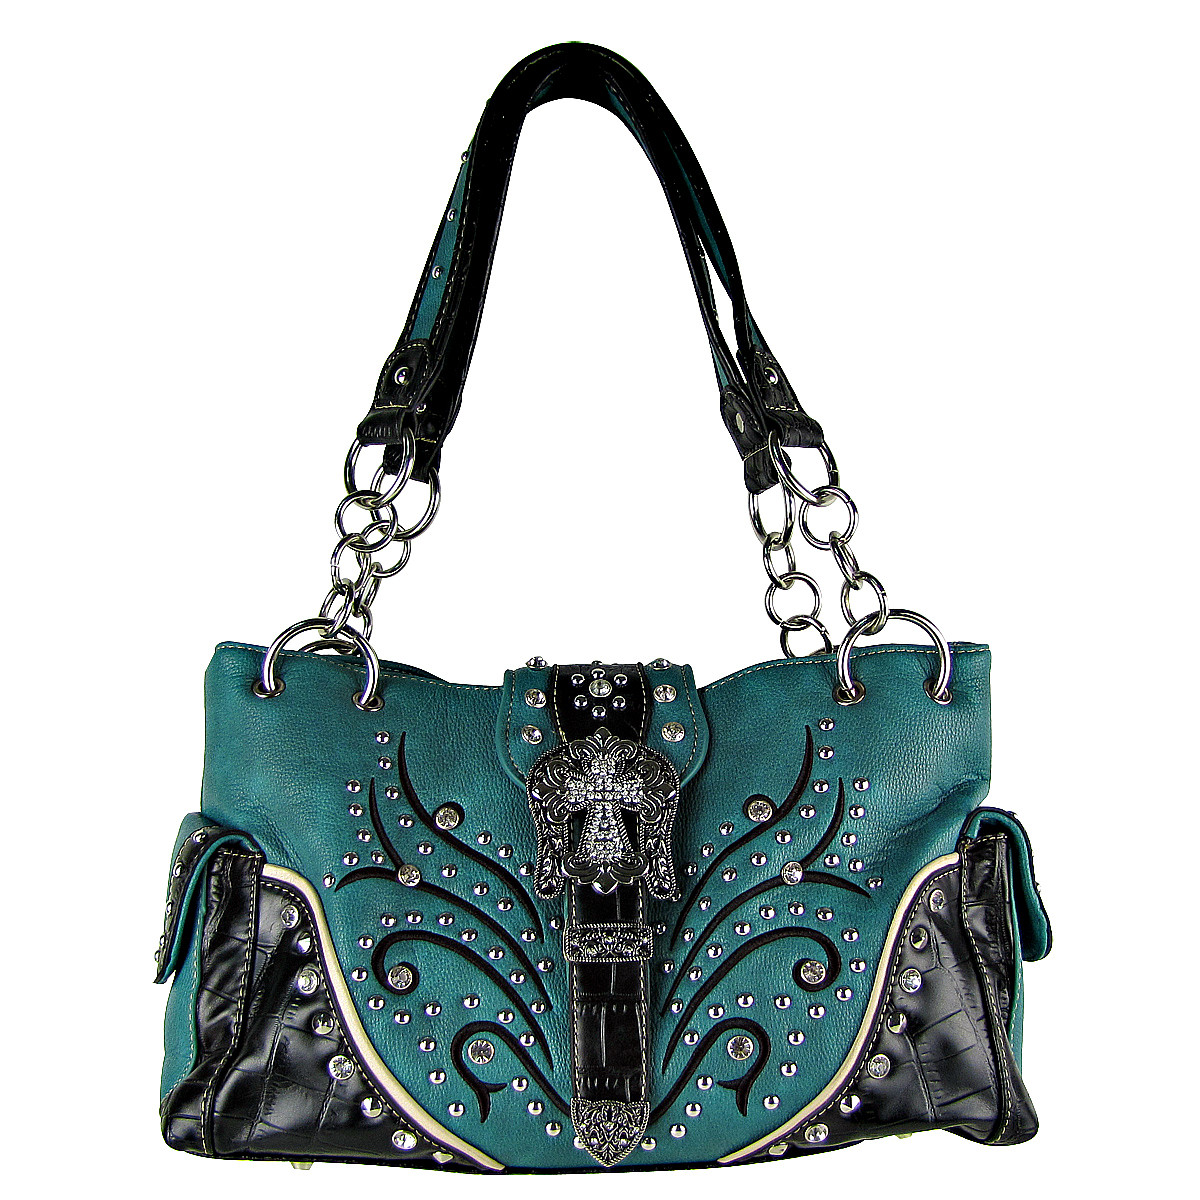 TURQUOISE STUDDED RHINESTONE CROSS BUCKLE LOOK SHOULDER HANDBAG HB1-HL12174-1TRQ